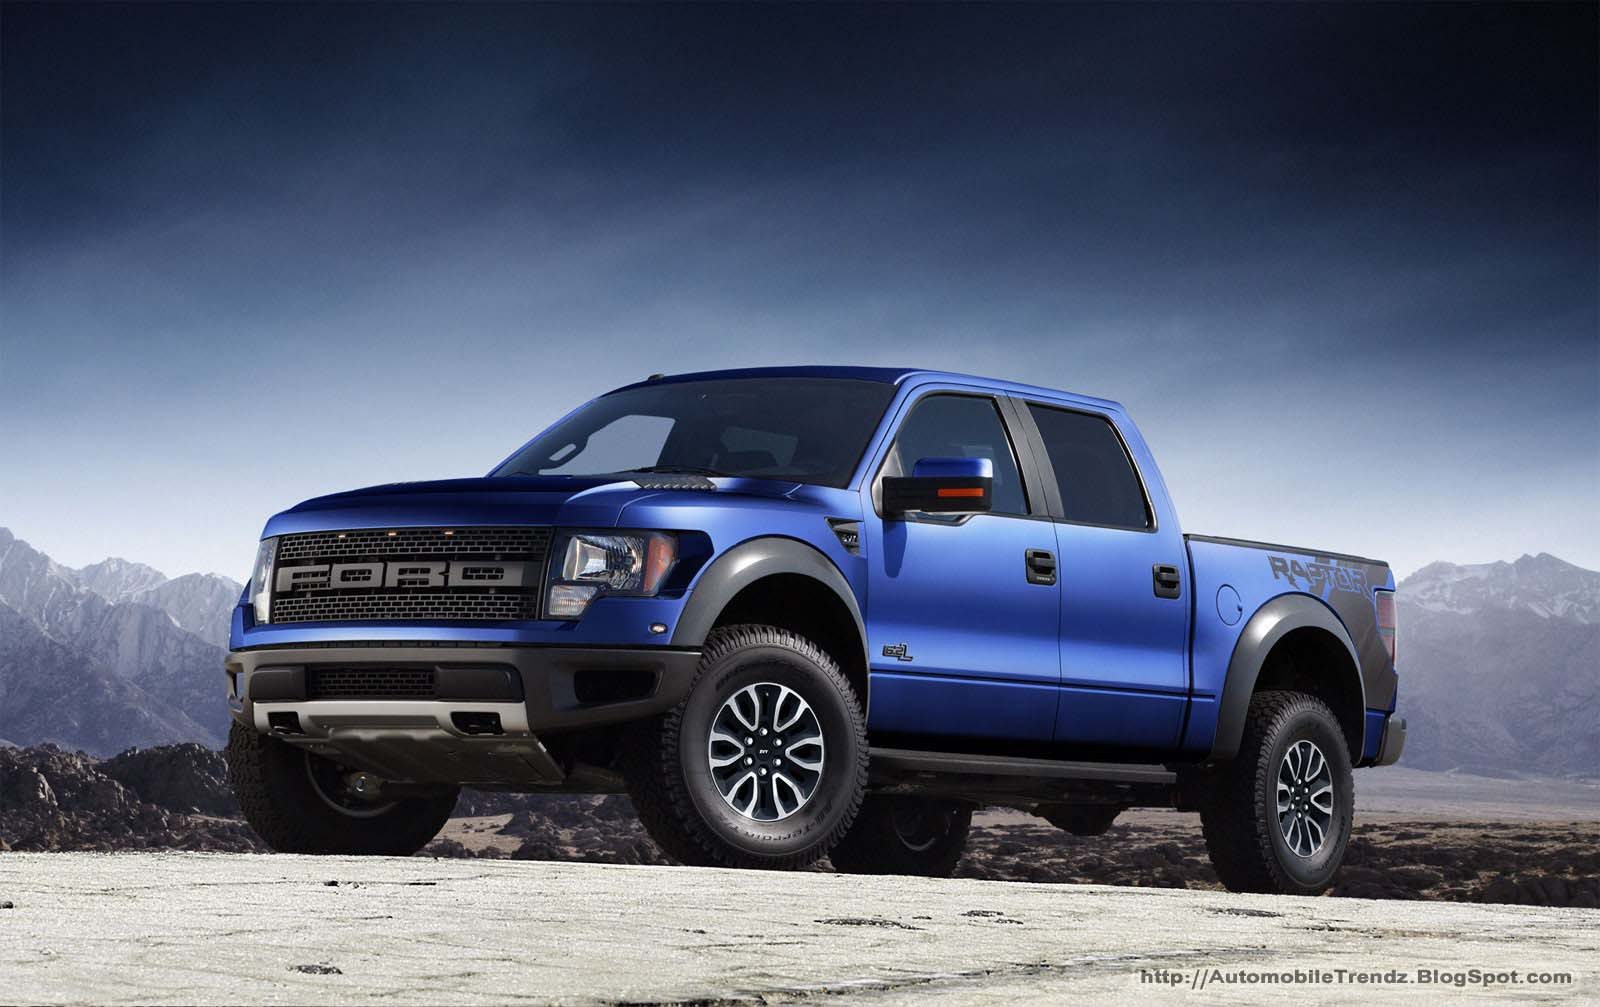 F150 Shelby Interior >> Automobile Trendz: Ford Raptor Wallpaper